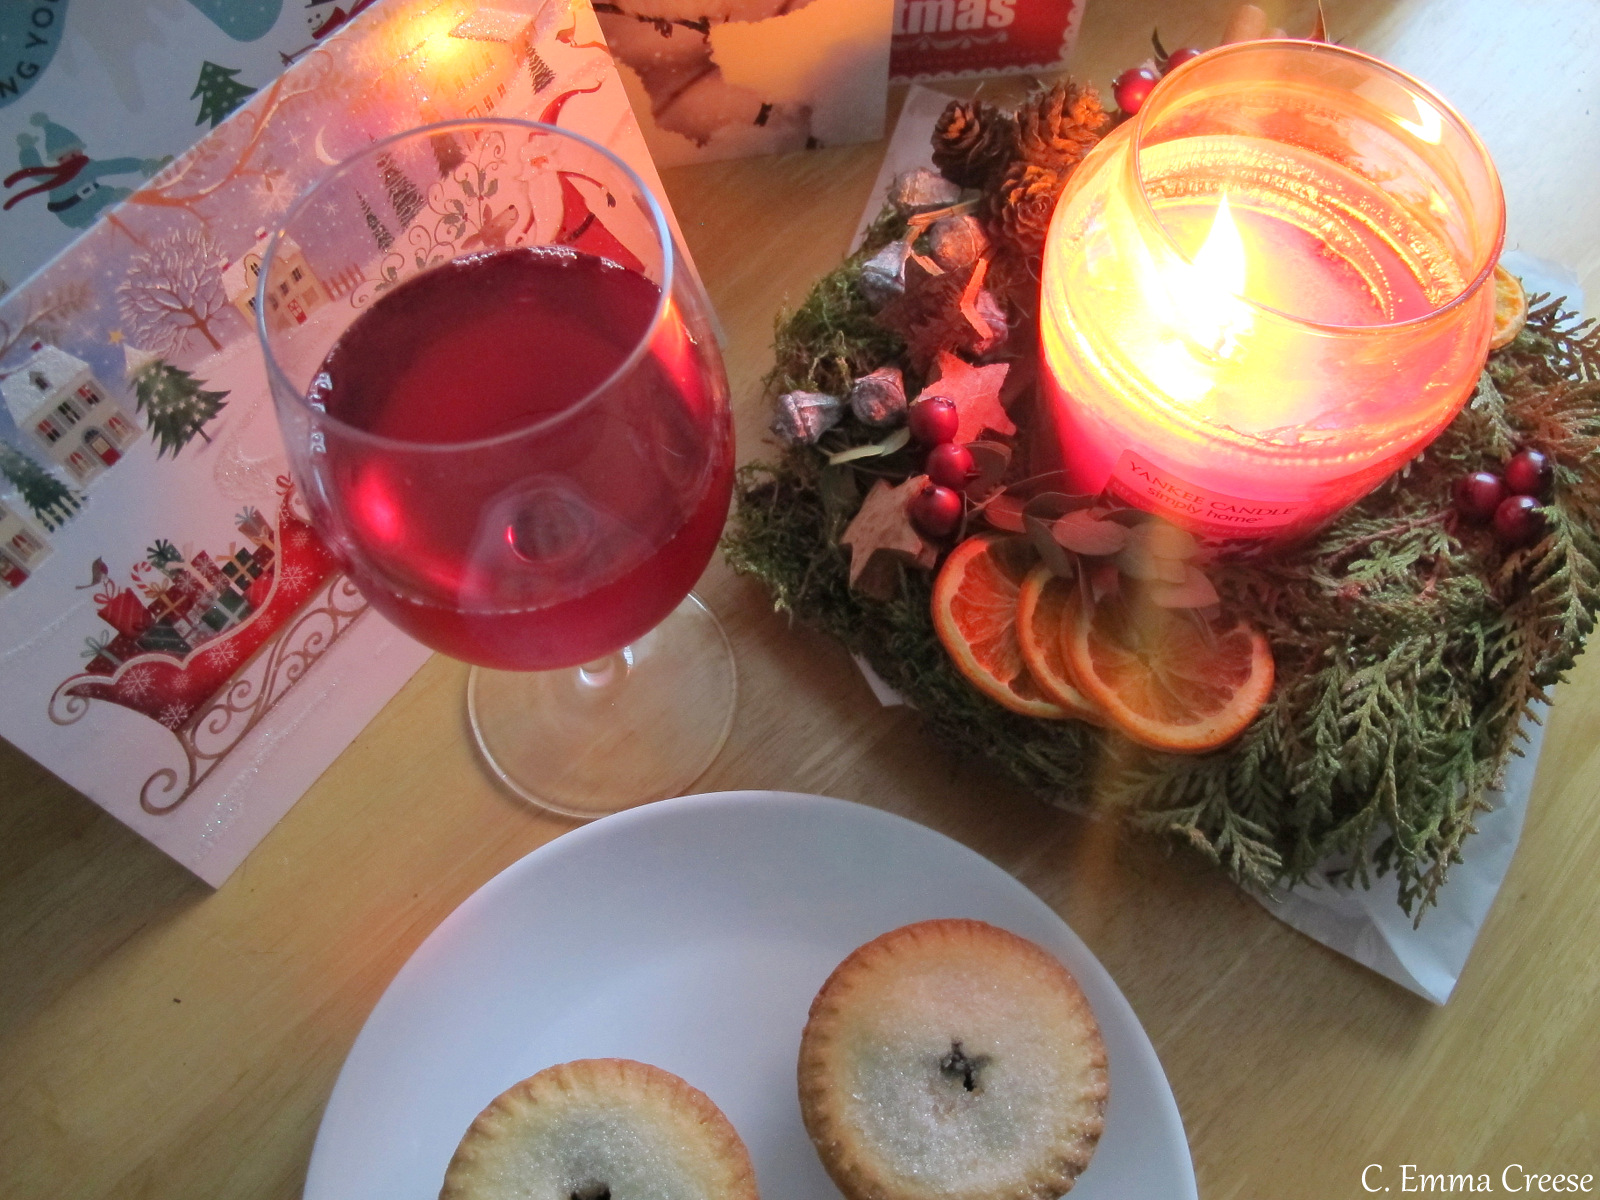 Wait, it's Christmas already somehow? It's ok, I have a playlist and mince pies at the ready... Adventures of a London Kiwi